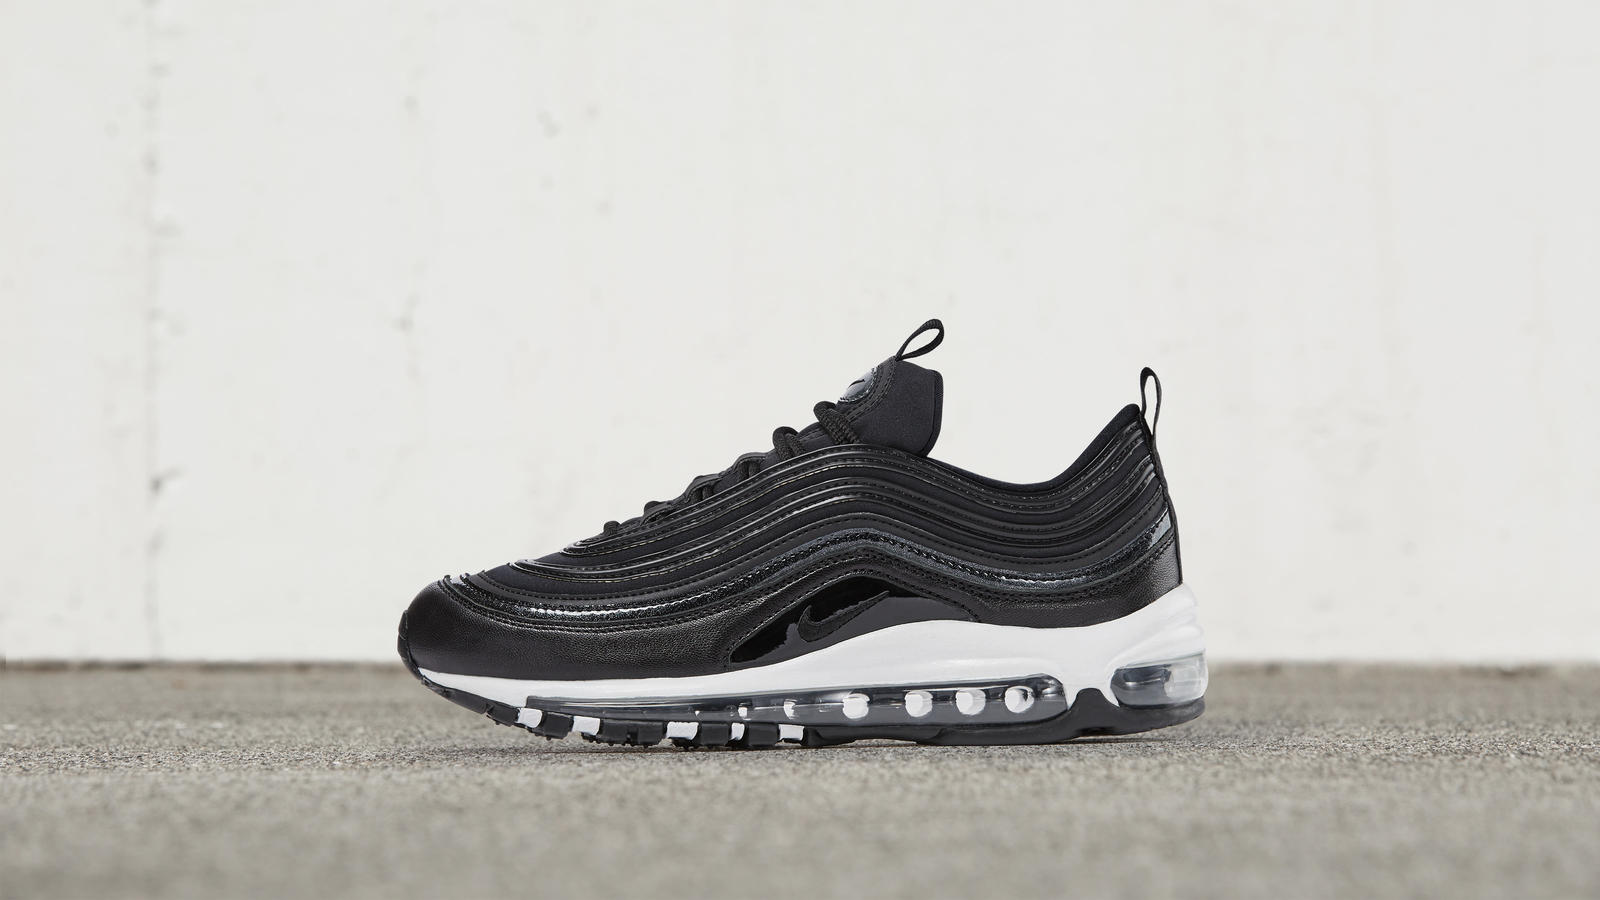 Air max 97 metallic lea black 1 hd 1600